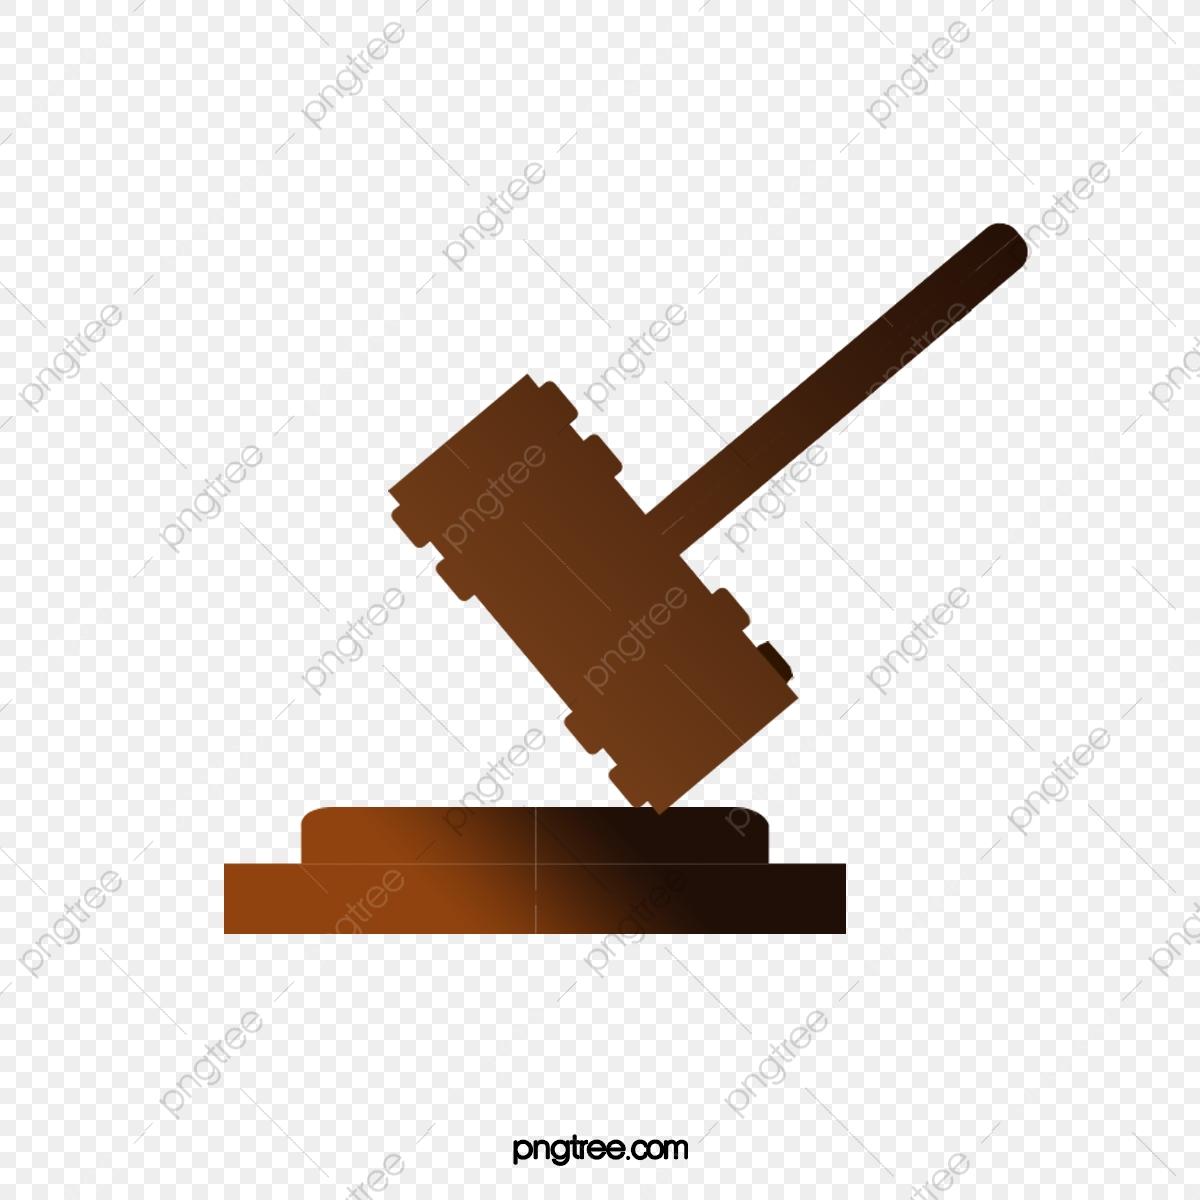 hight resolution of commercial use resource upgrade to premium plan and get license authorization upgradenow judge s hammer hammer clipart